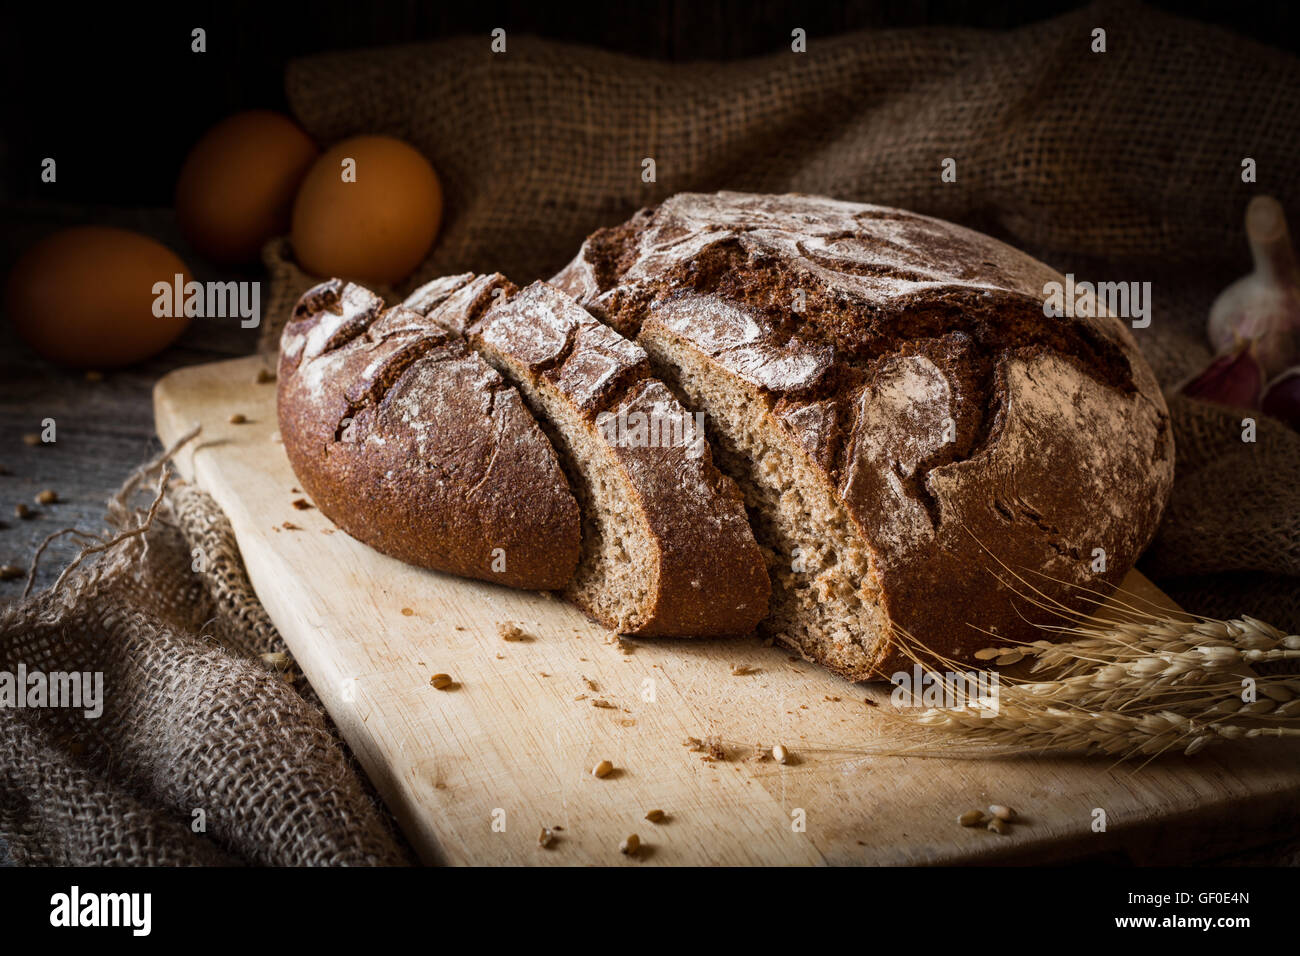 Sourdough rye bread sliced on wooden cutting board. Rustic still life. Natural light, low key - Stock Image